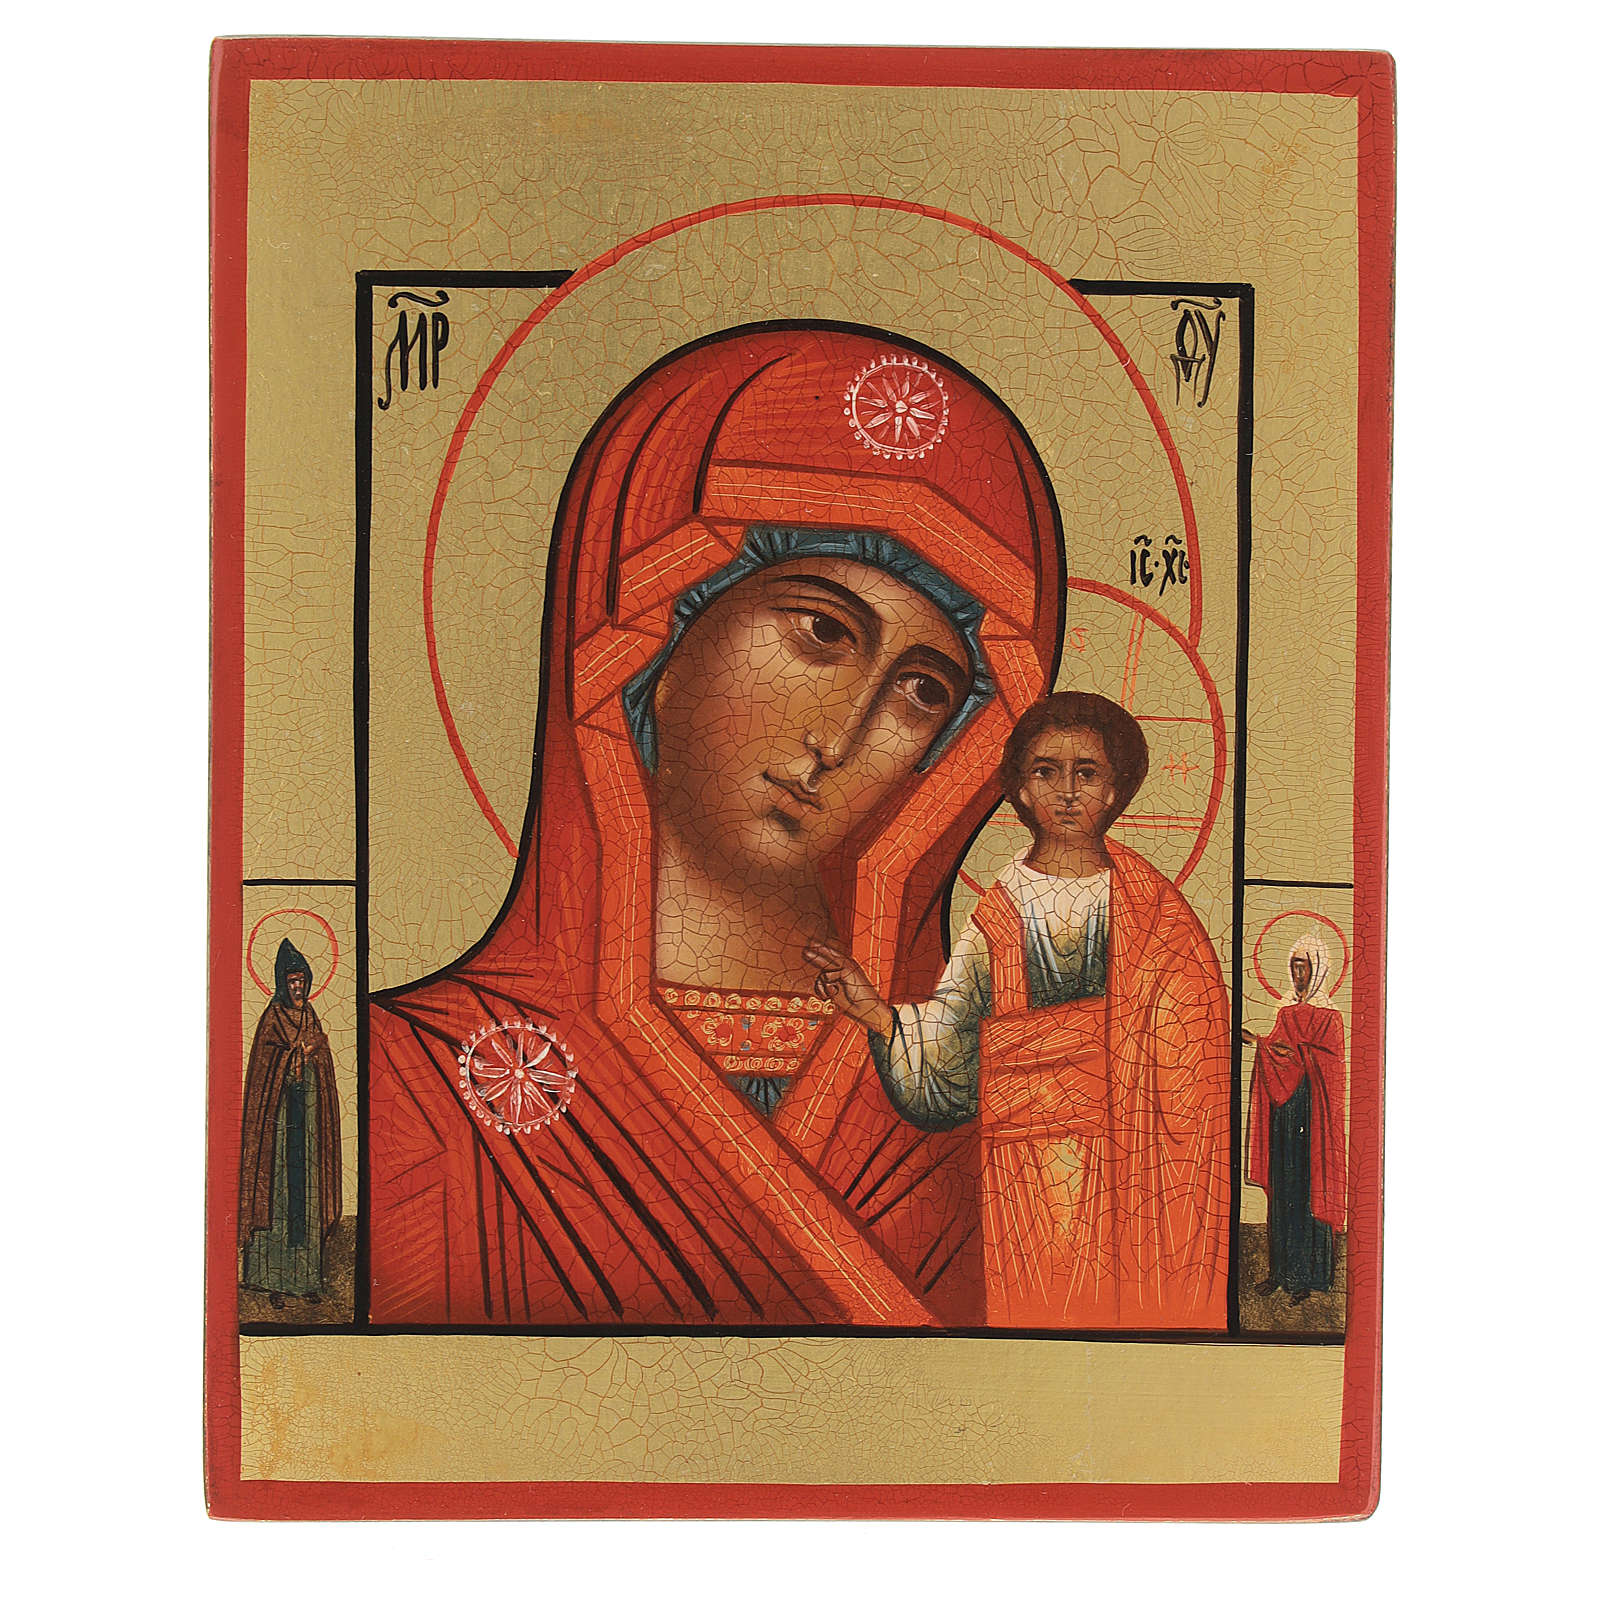 Our Lady is depicted in half-length with the image of Christ ove 4